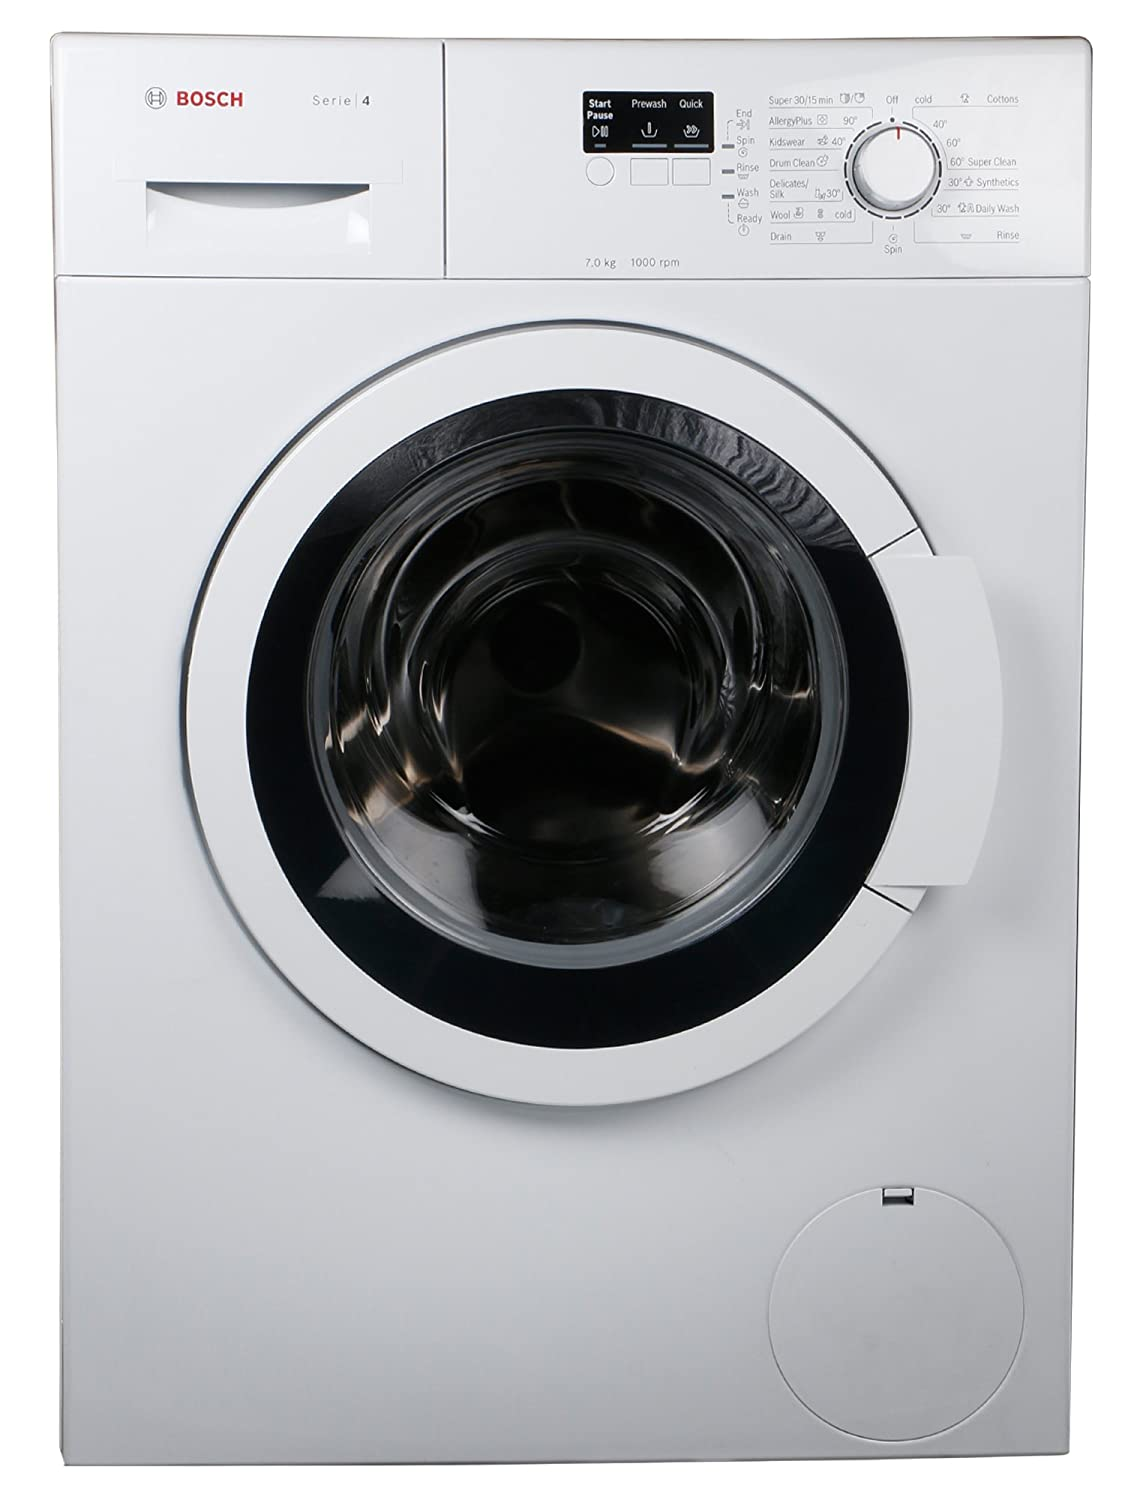 Bosch Wak20060in Fully Automatic Front Loading Washing Machine 7 Kg